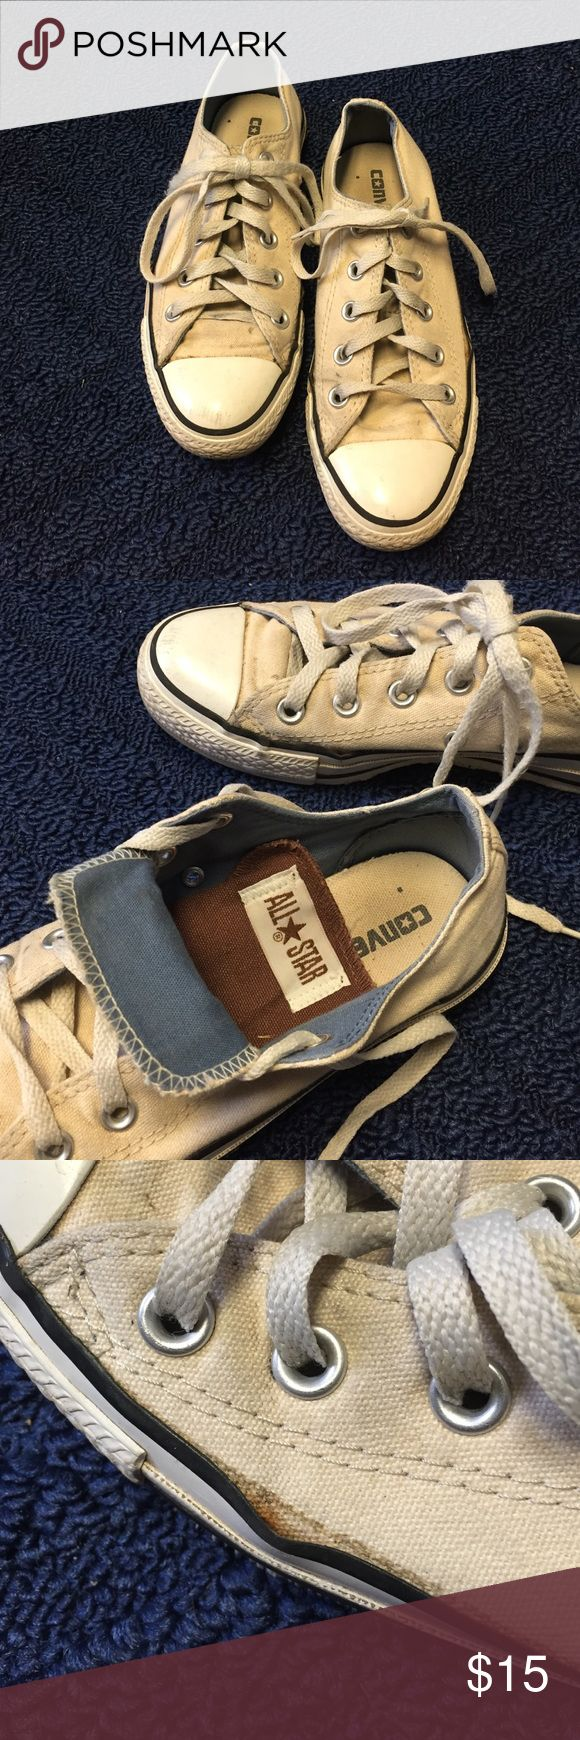 Off-white low top converse (double tongued) Off-white converse with a double tongue. I've never folded the tongue down and forgot they were double tongued. So cute and versatile! They're too small for me so they're pretty lightly worn. Sort of dirty though; worst flaws/smudges pictured. Converse Shoes Sneakers